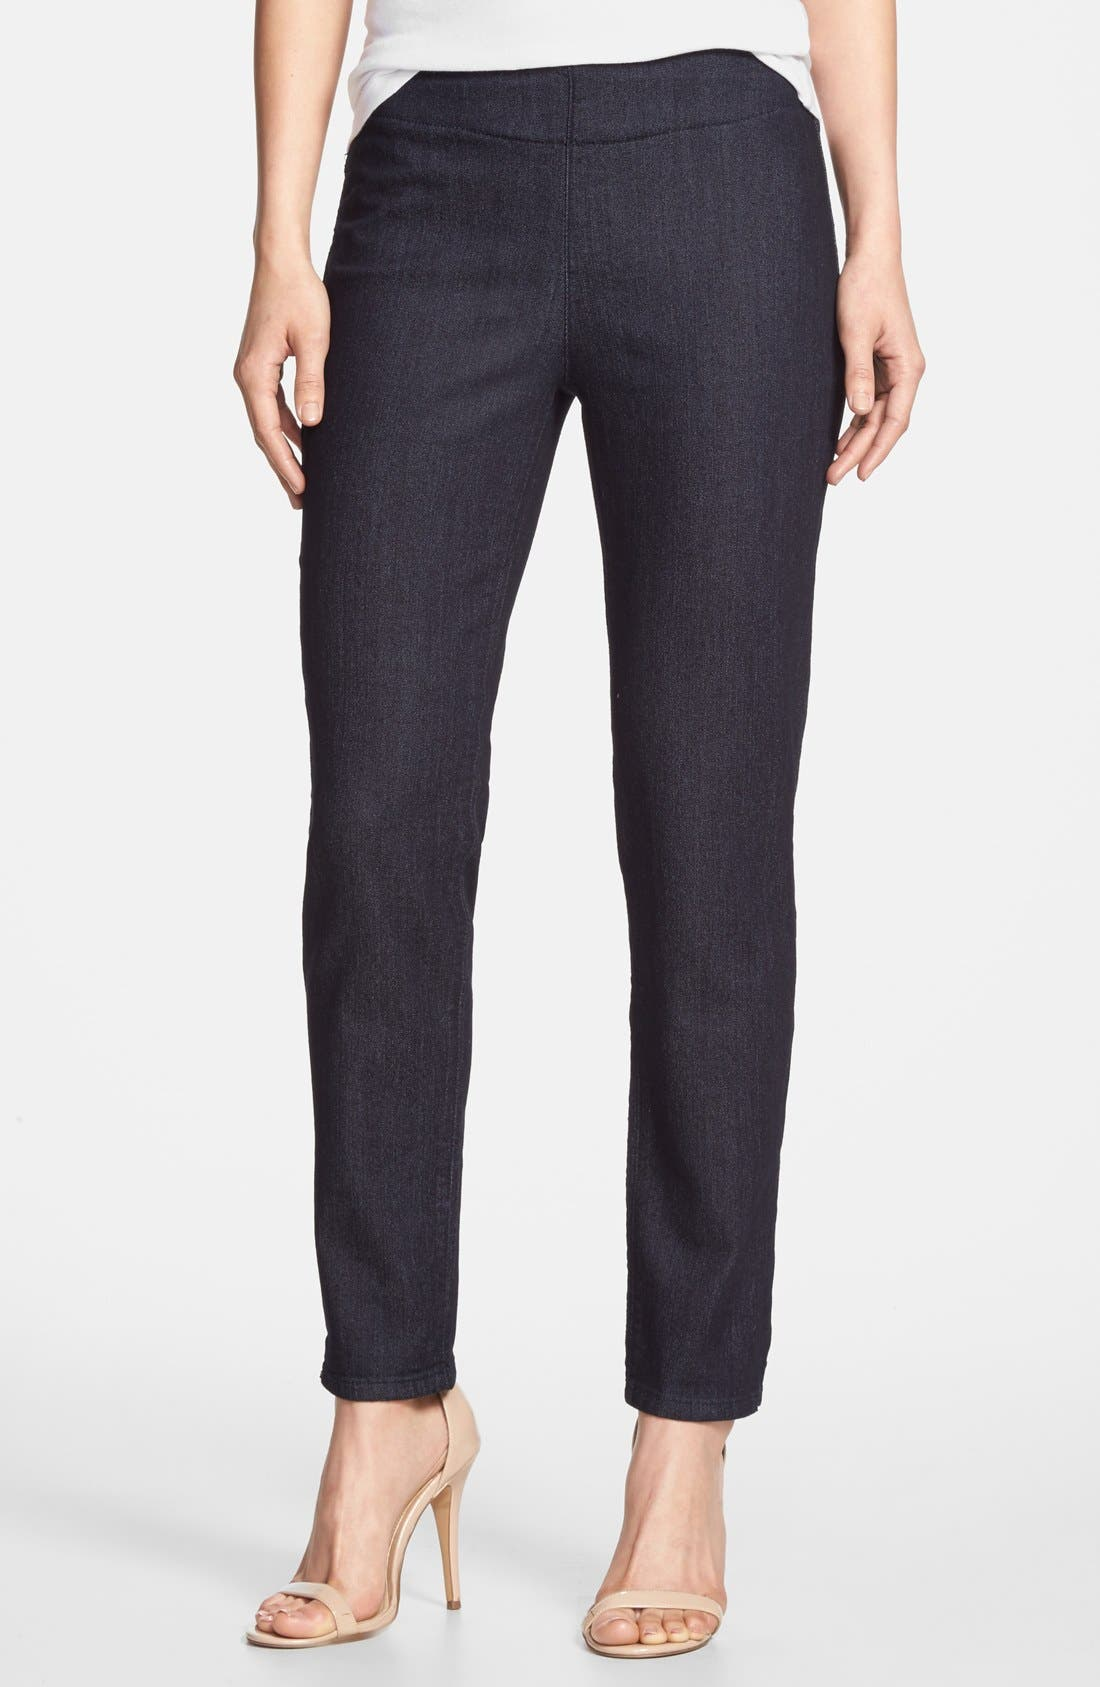 Main Image - NYDJ 'Millie' Pull-On Stretch Fitted Ankle Jeans (Dark Enzyme) (Regular & Petite)